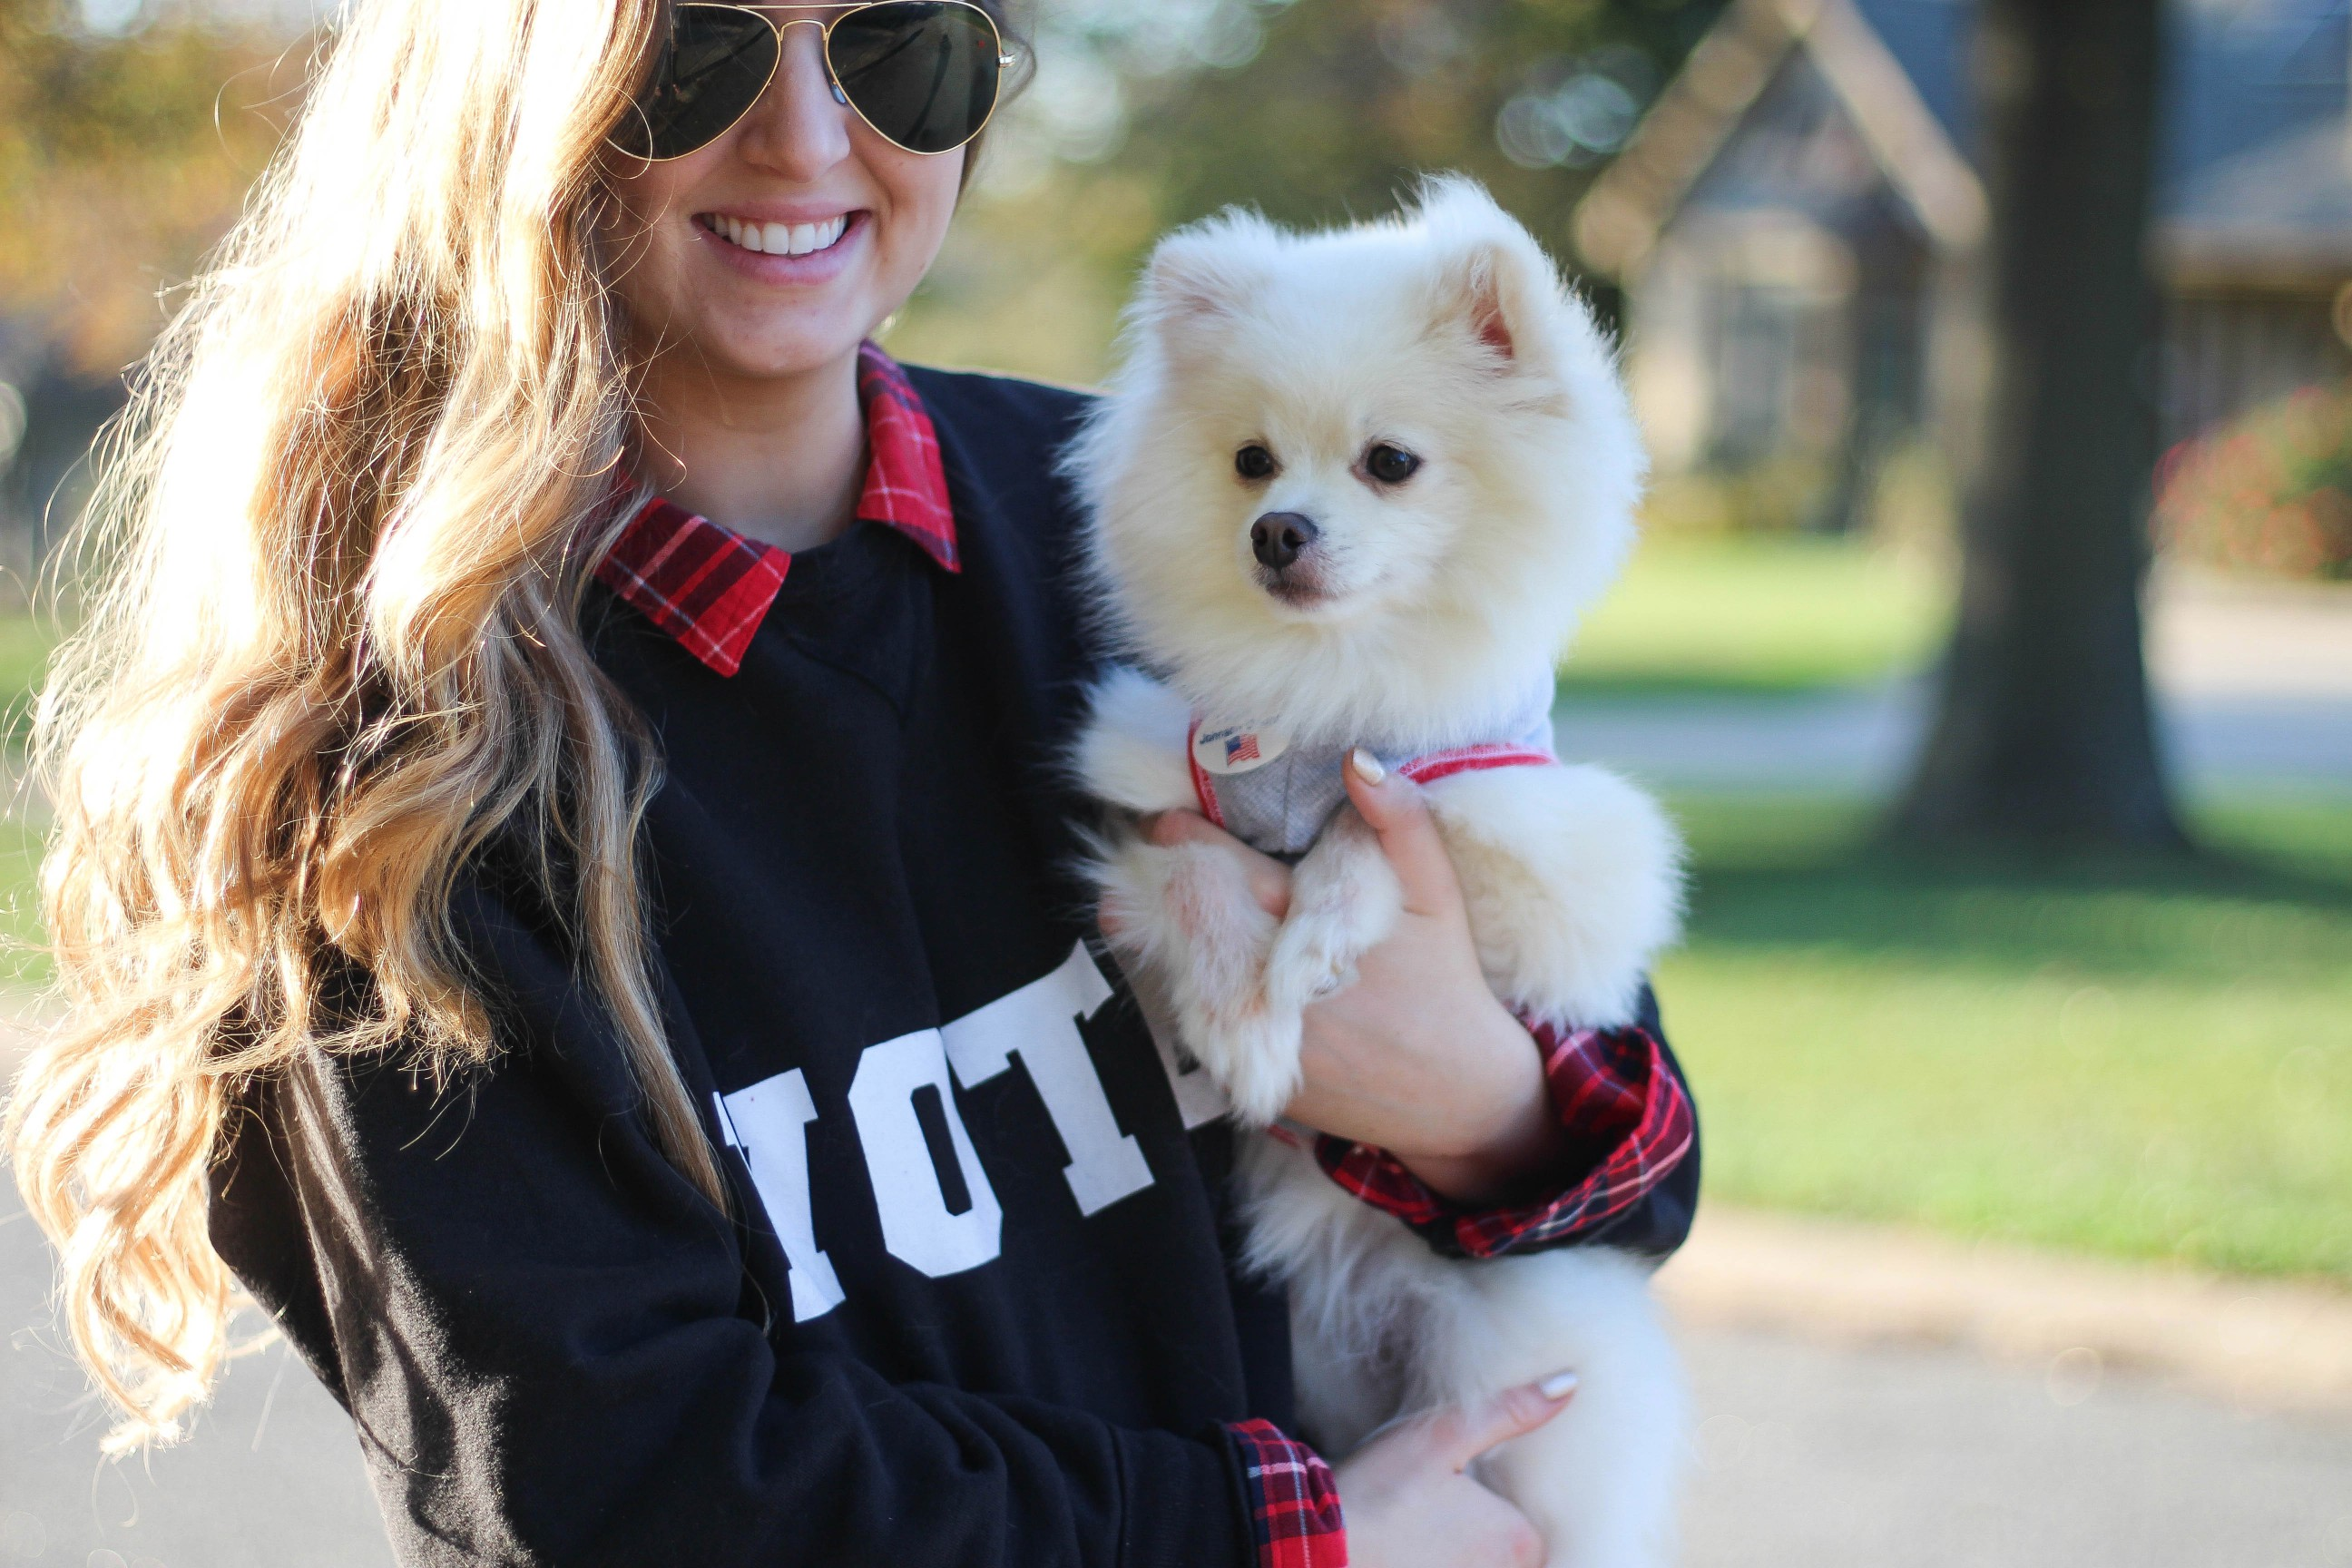 DIY Sweatshirt 2016 election day vote sweatshirt flannel layer outfit pomeranian OOTD outfit by daily dose of charm by lauren lindmark